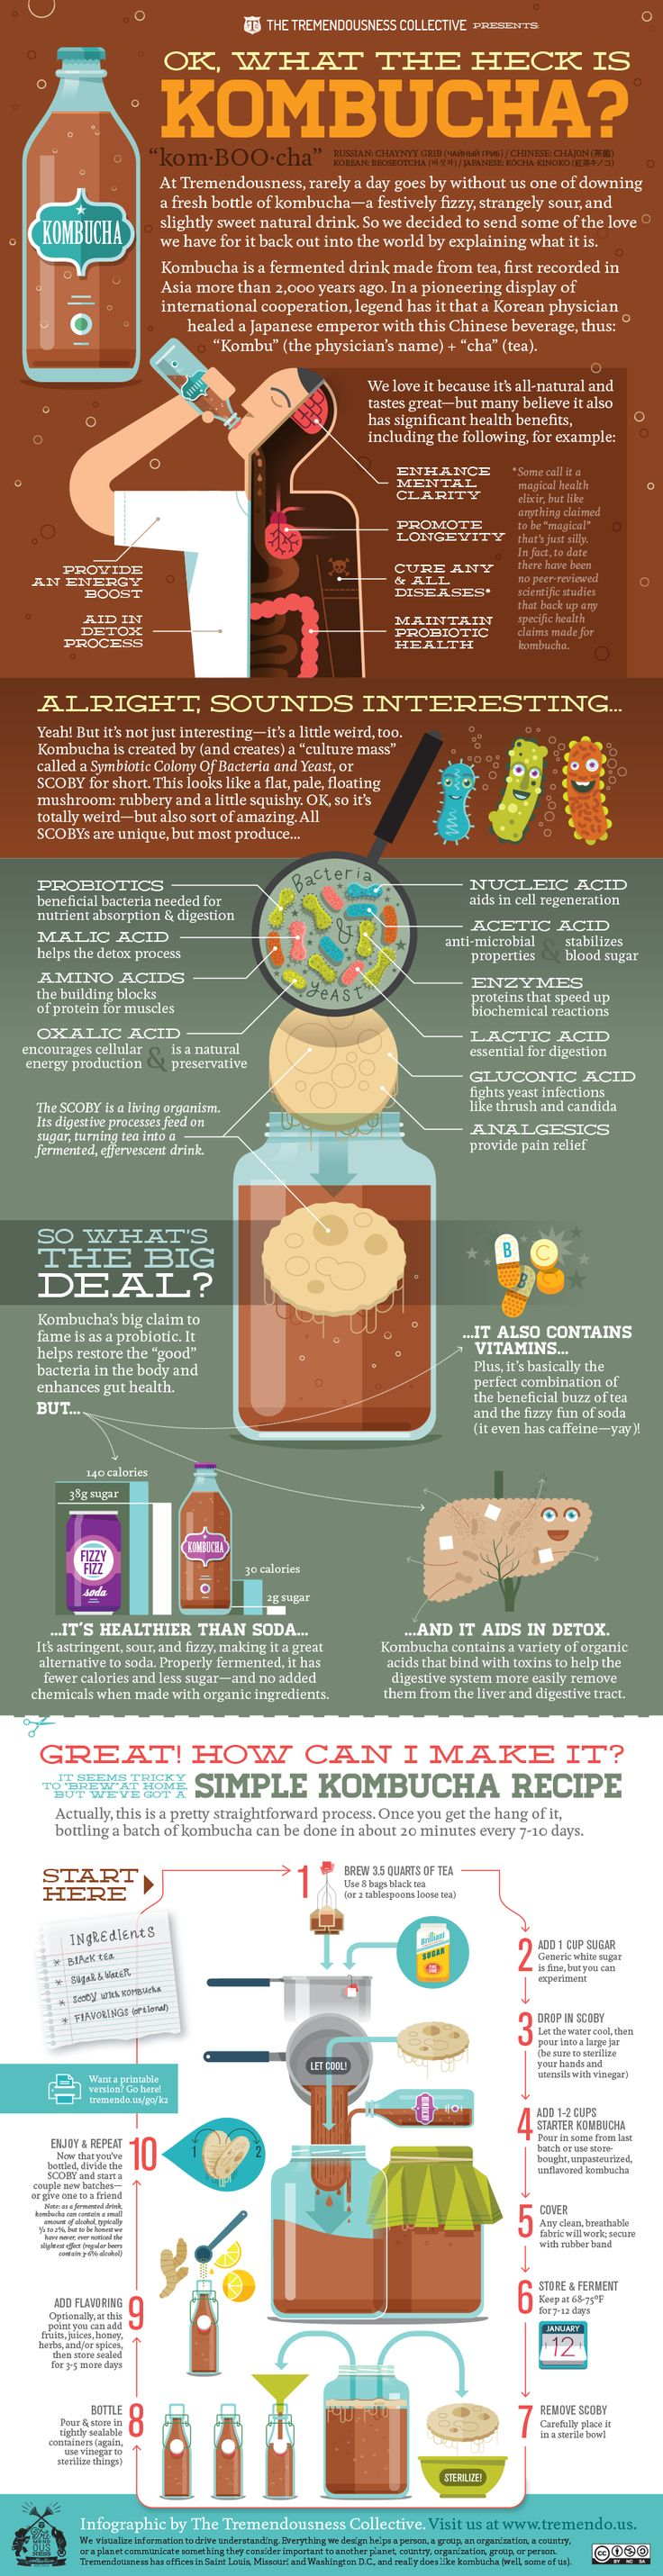 "An eyebrow raises skeptically...  ""What. Are. You. Drinking?""  Kombucha!  It's fizzy and a bit sour, but I find it very tasty. And we made this infographic to help you learn more about it.  ..."